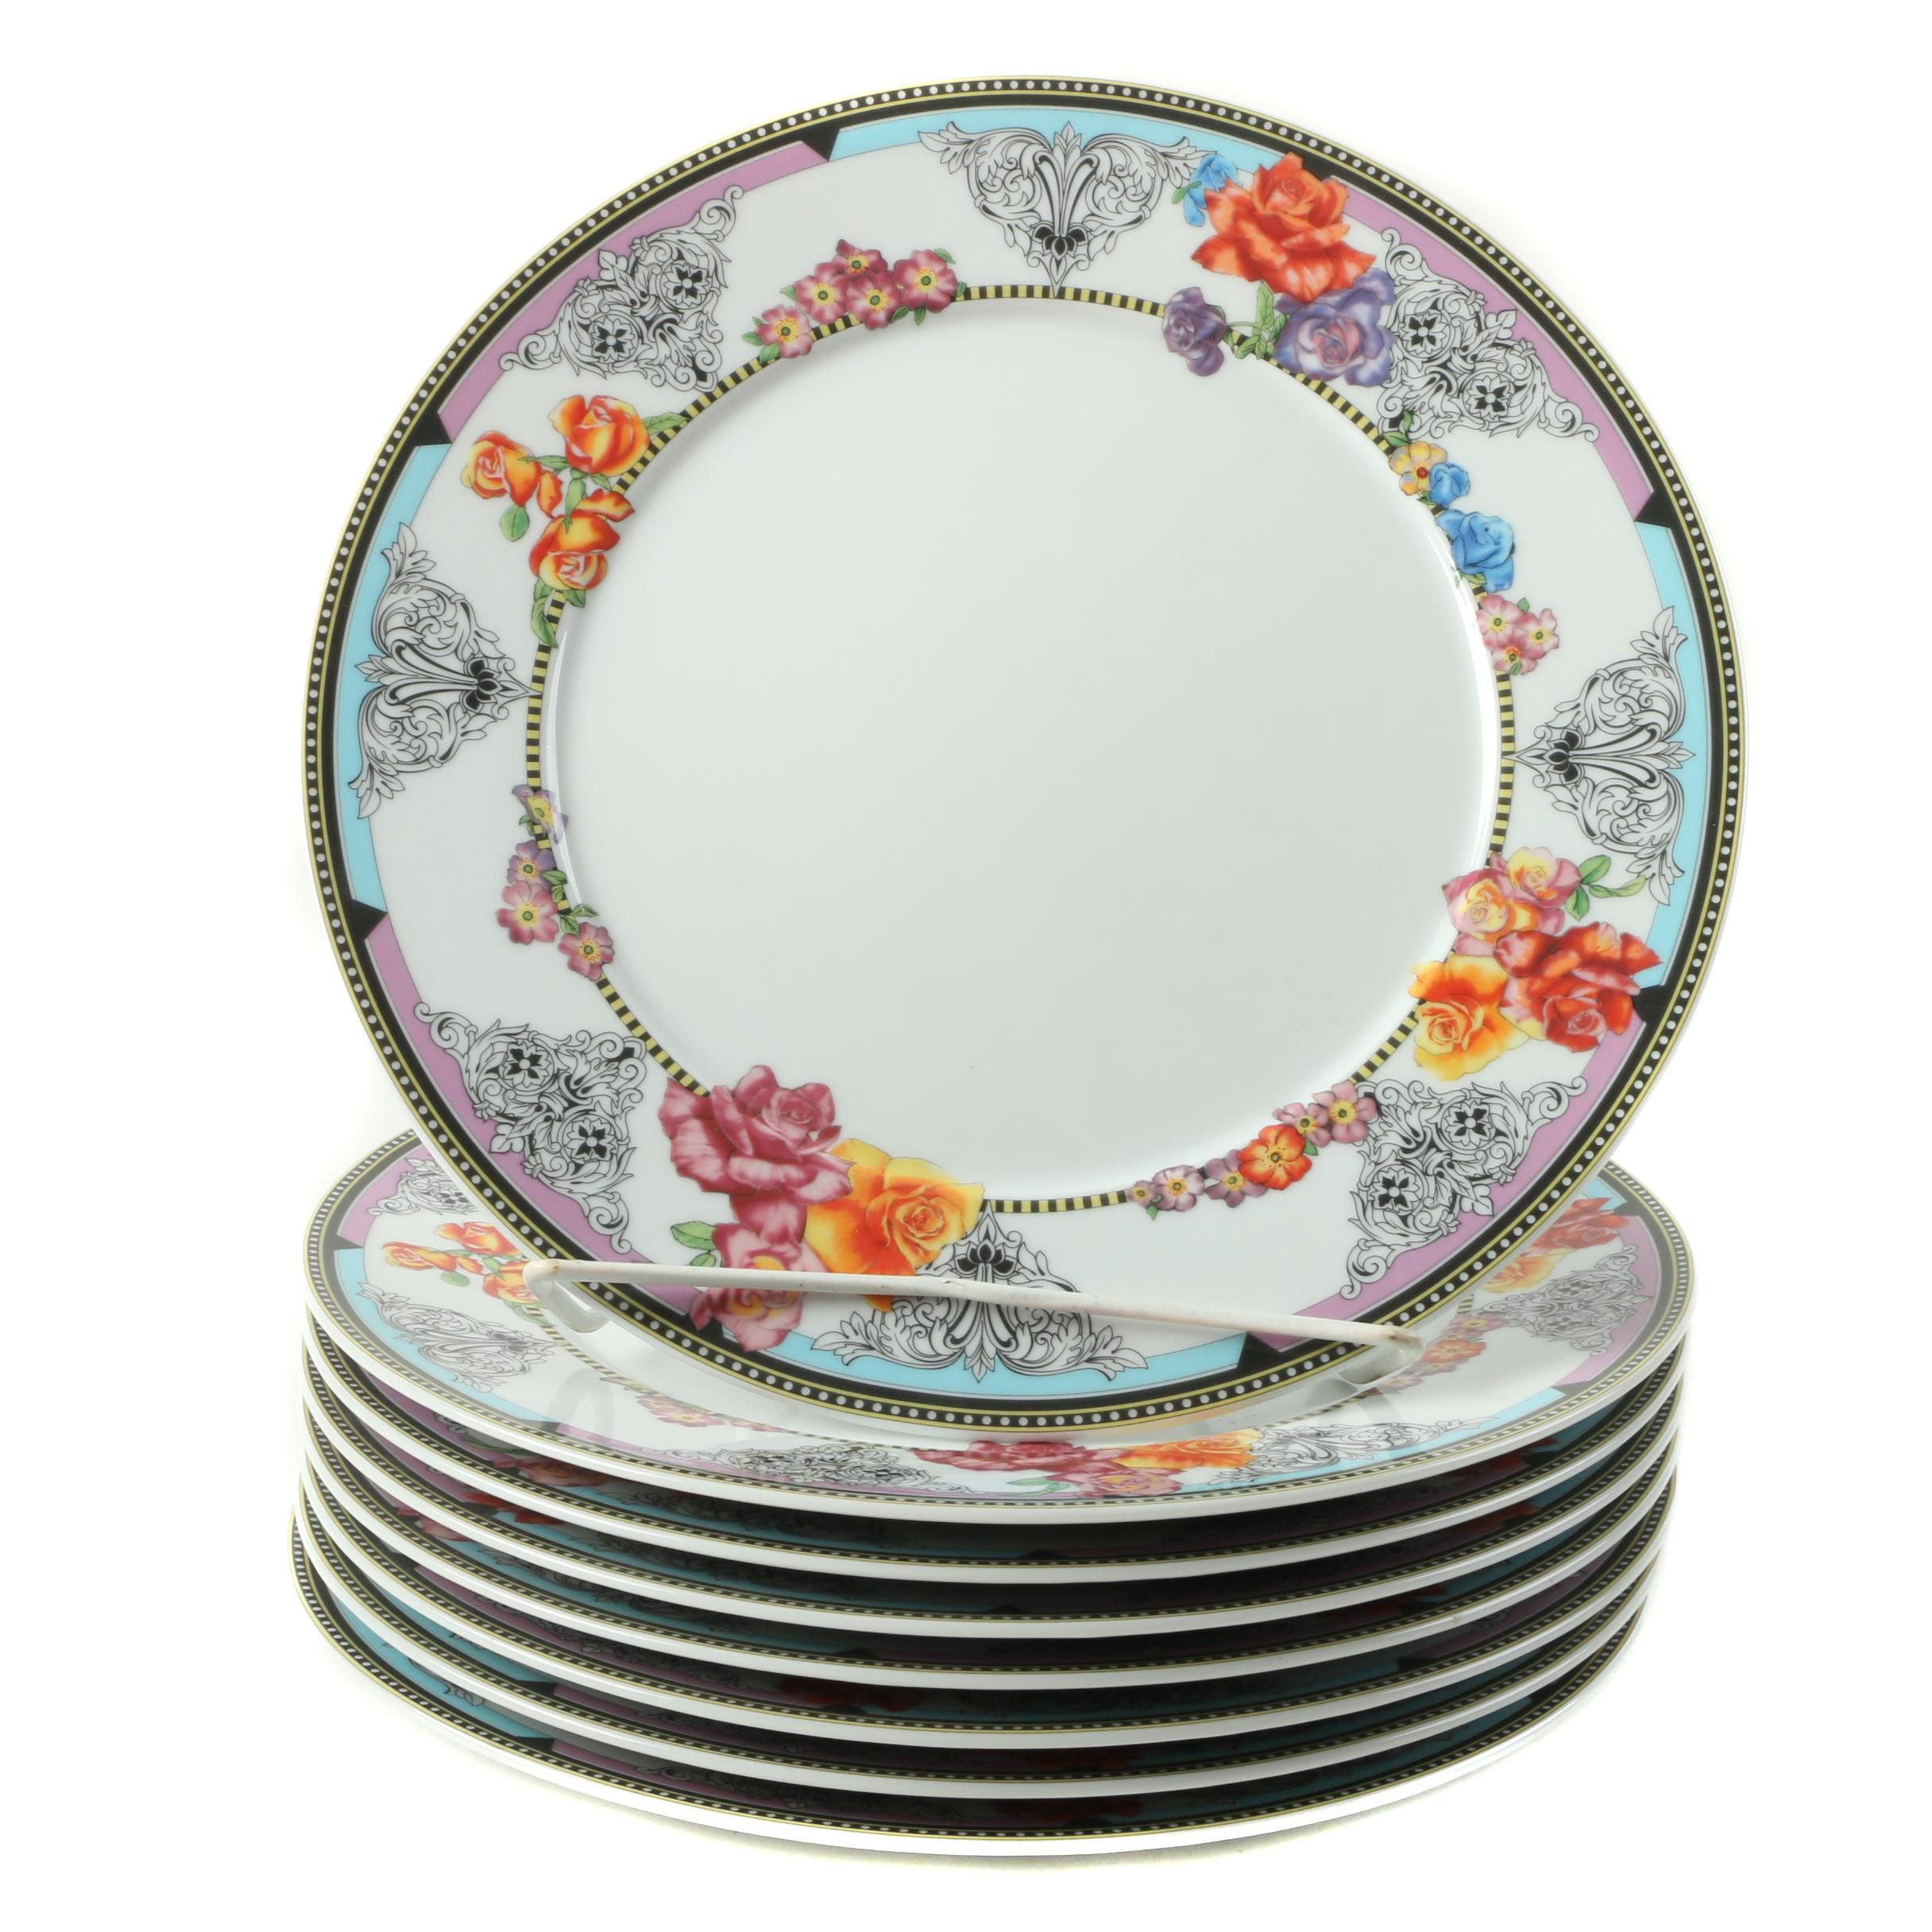 Rosenthal-Continental Versace  Hot Flowers  ...  sc 1 st  EBTH.com & Rosenthal-Continental Versace